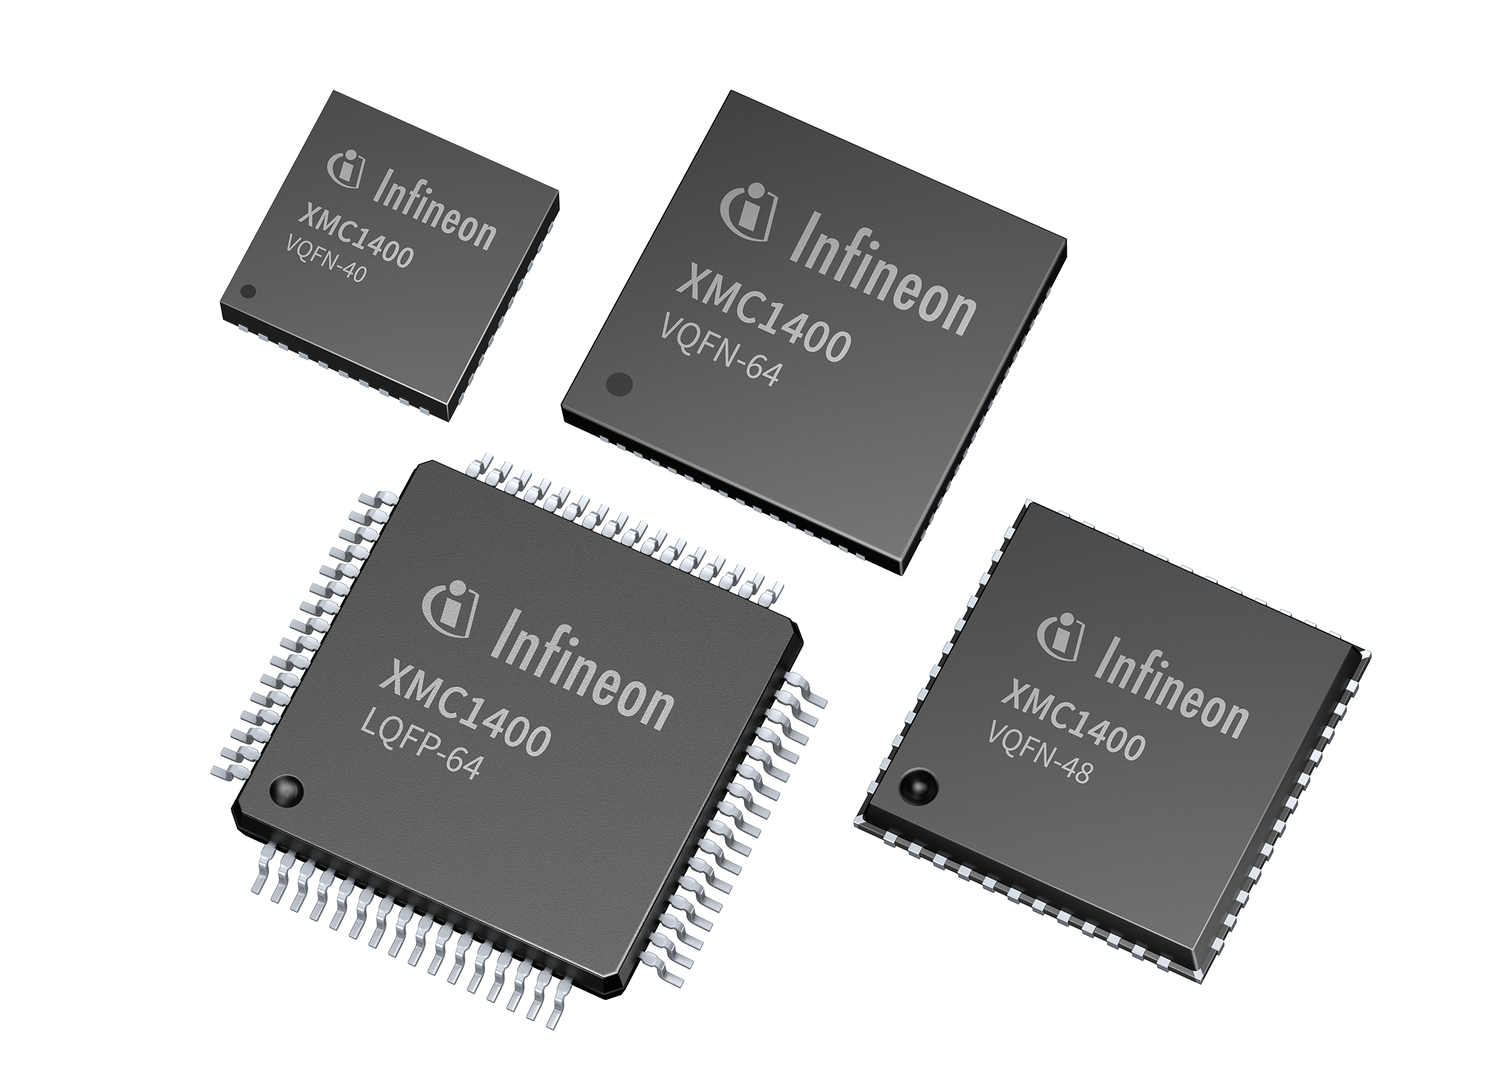 diagram also 5 pin relay with connector moreover universal pct 1332 bit xmc1000 industrial microcontroller arm® cortex® m0 infineon diagram also 5 pin relay with connector moreover universal pct 13 pin